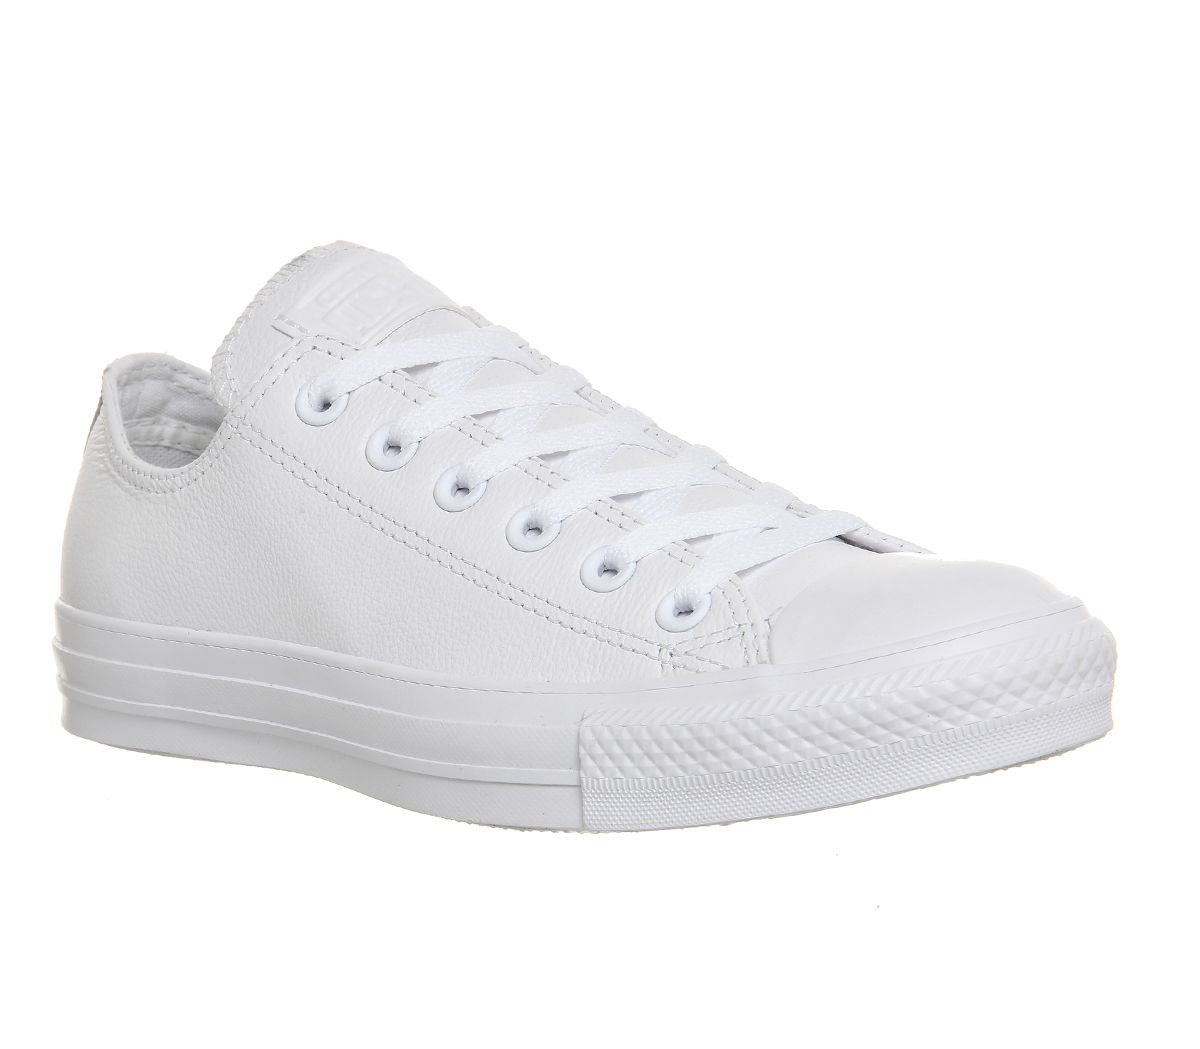 d3a0939f Sentinel Womens Converse All Star Low Leather White Mono Leather Trainers  Shoes